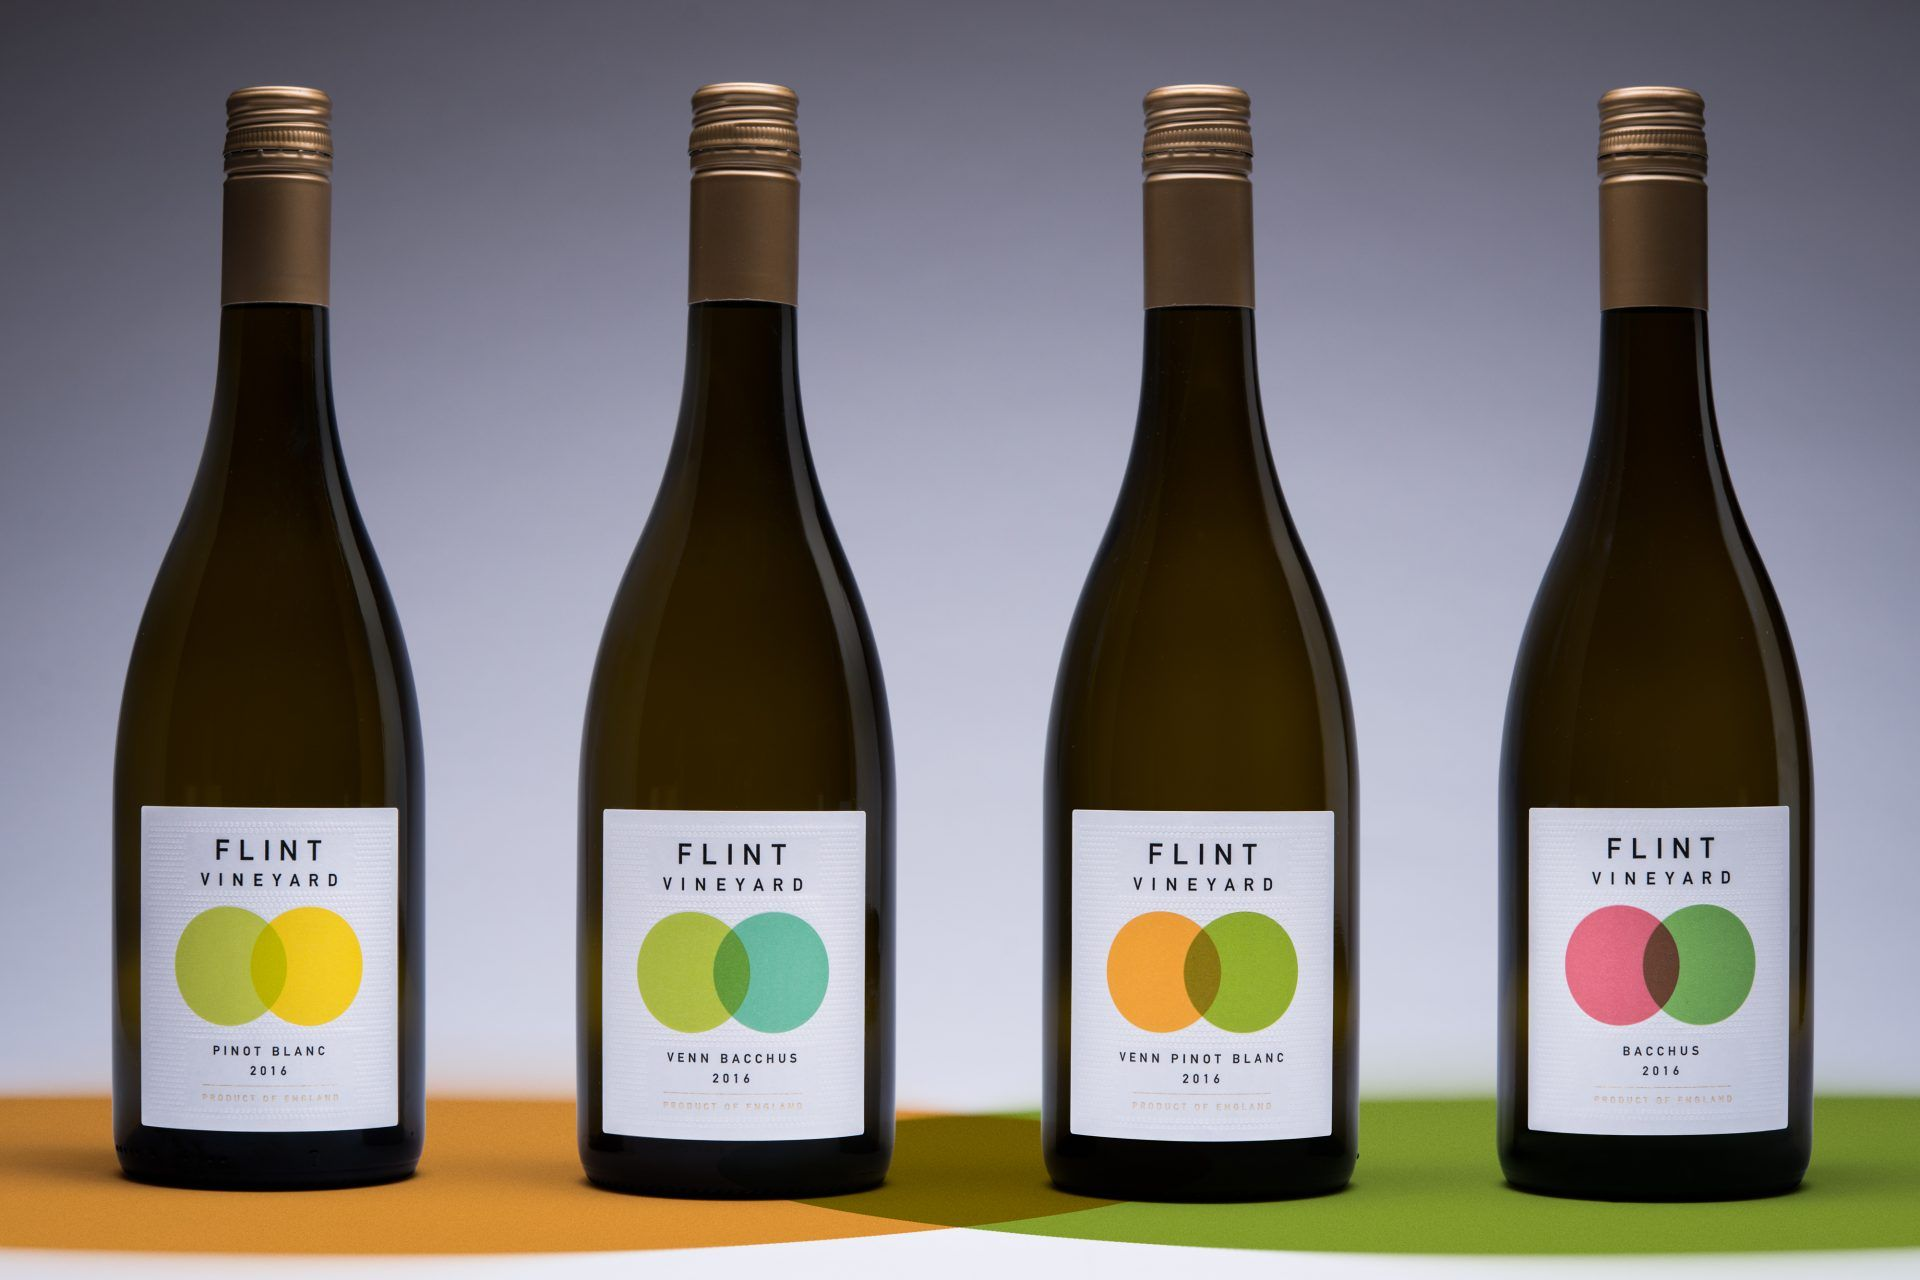 Flint Vineyard English Wine Labels Designed By Chrisbedsoncreative